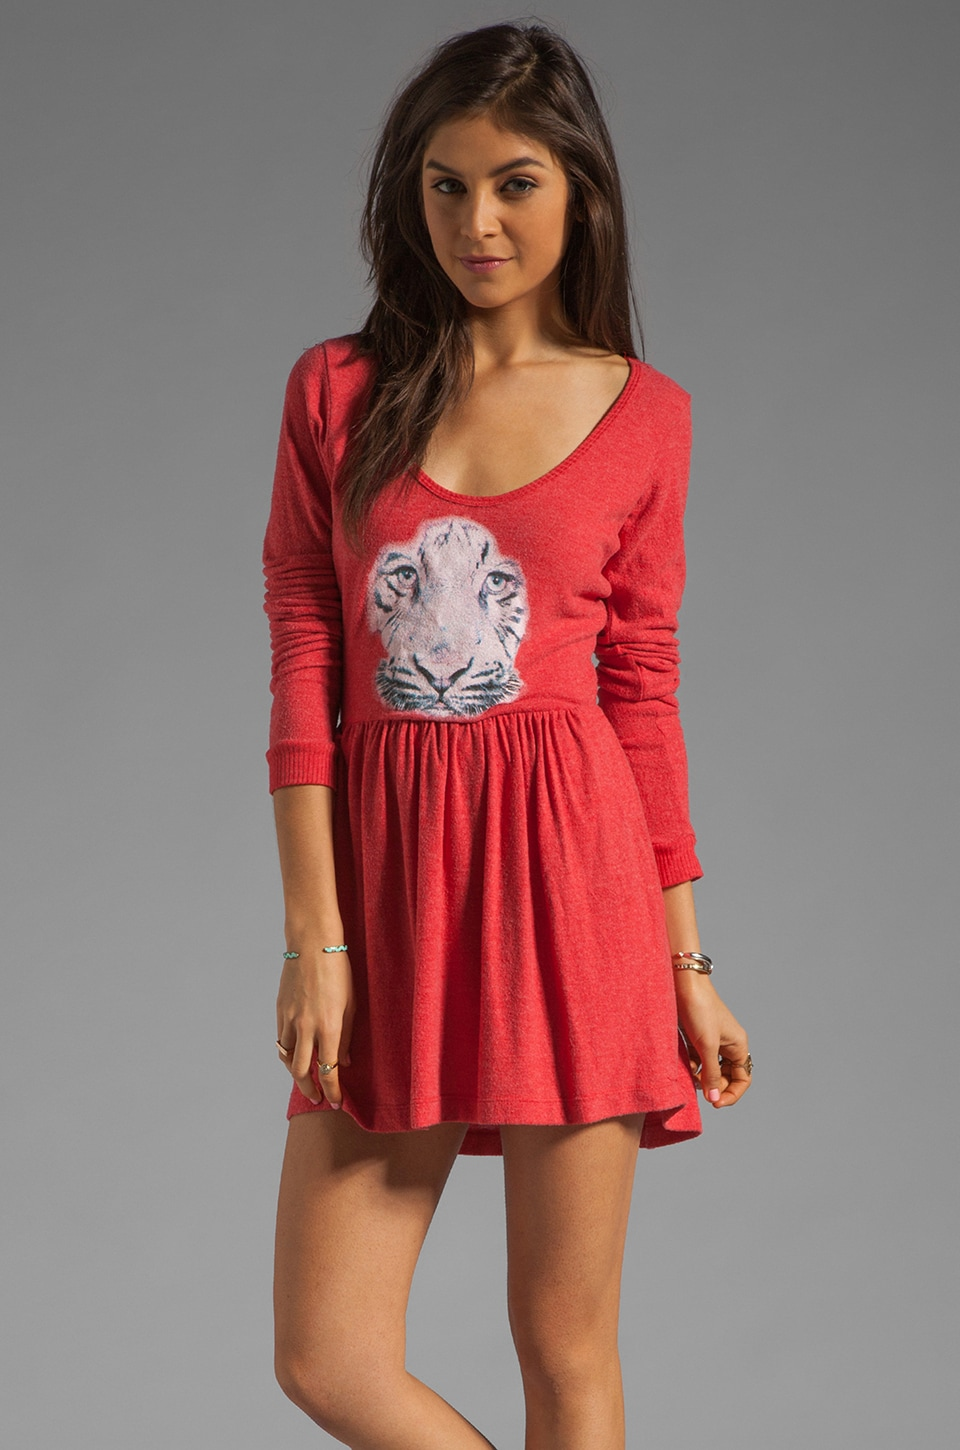 Local Celebrity Tiga Face Dress is Red